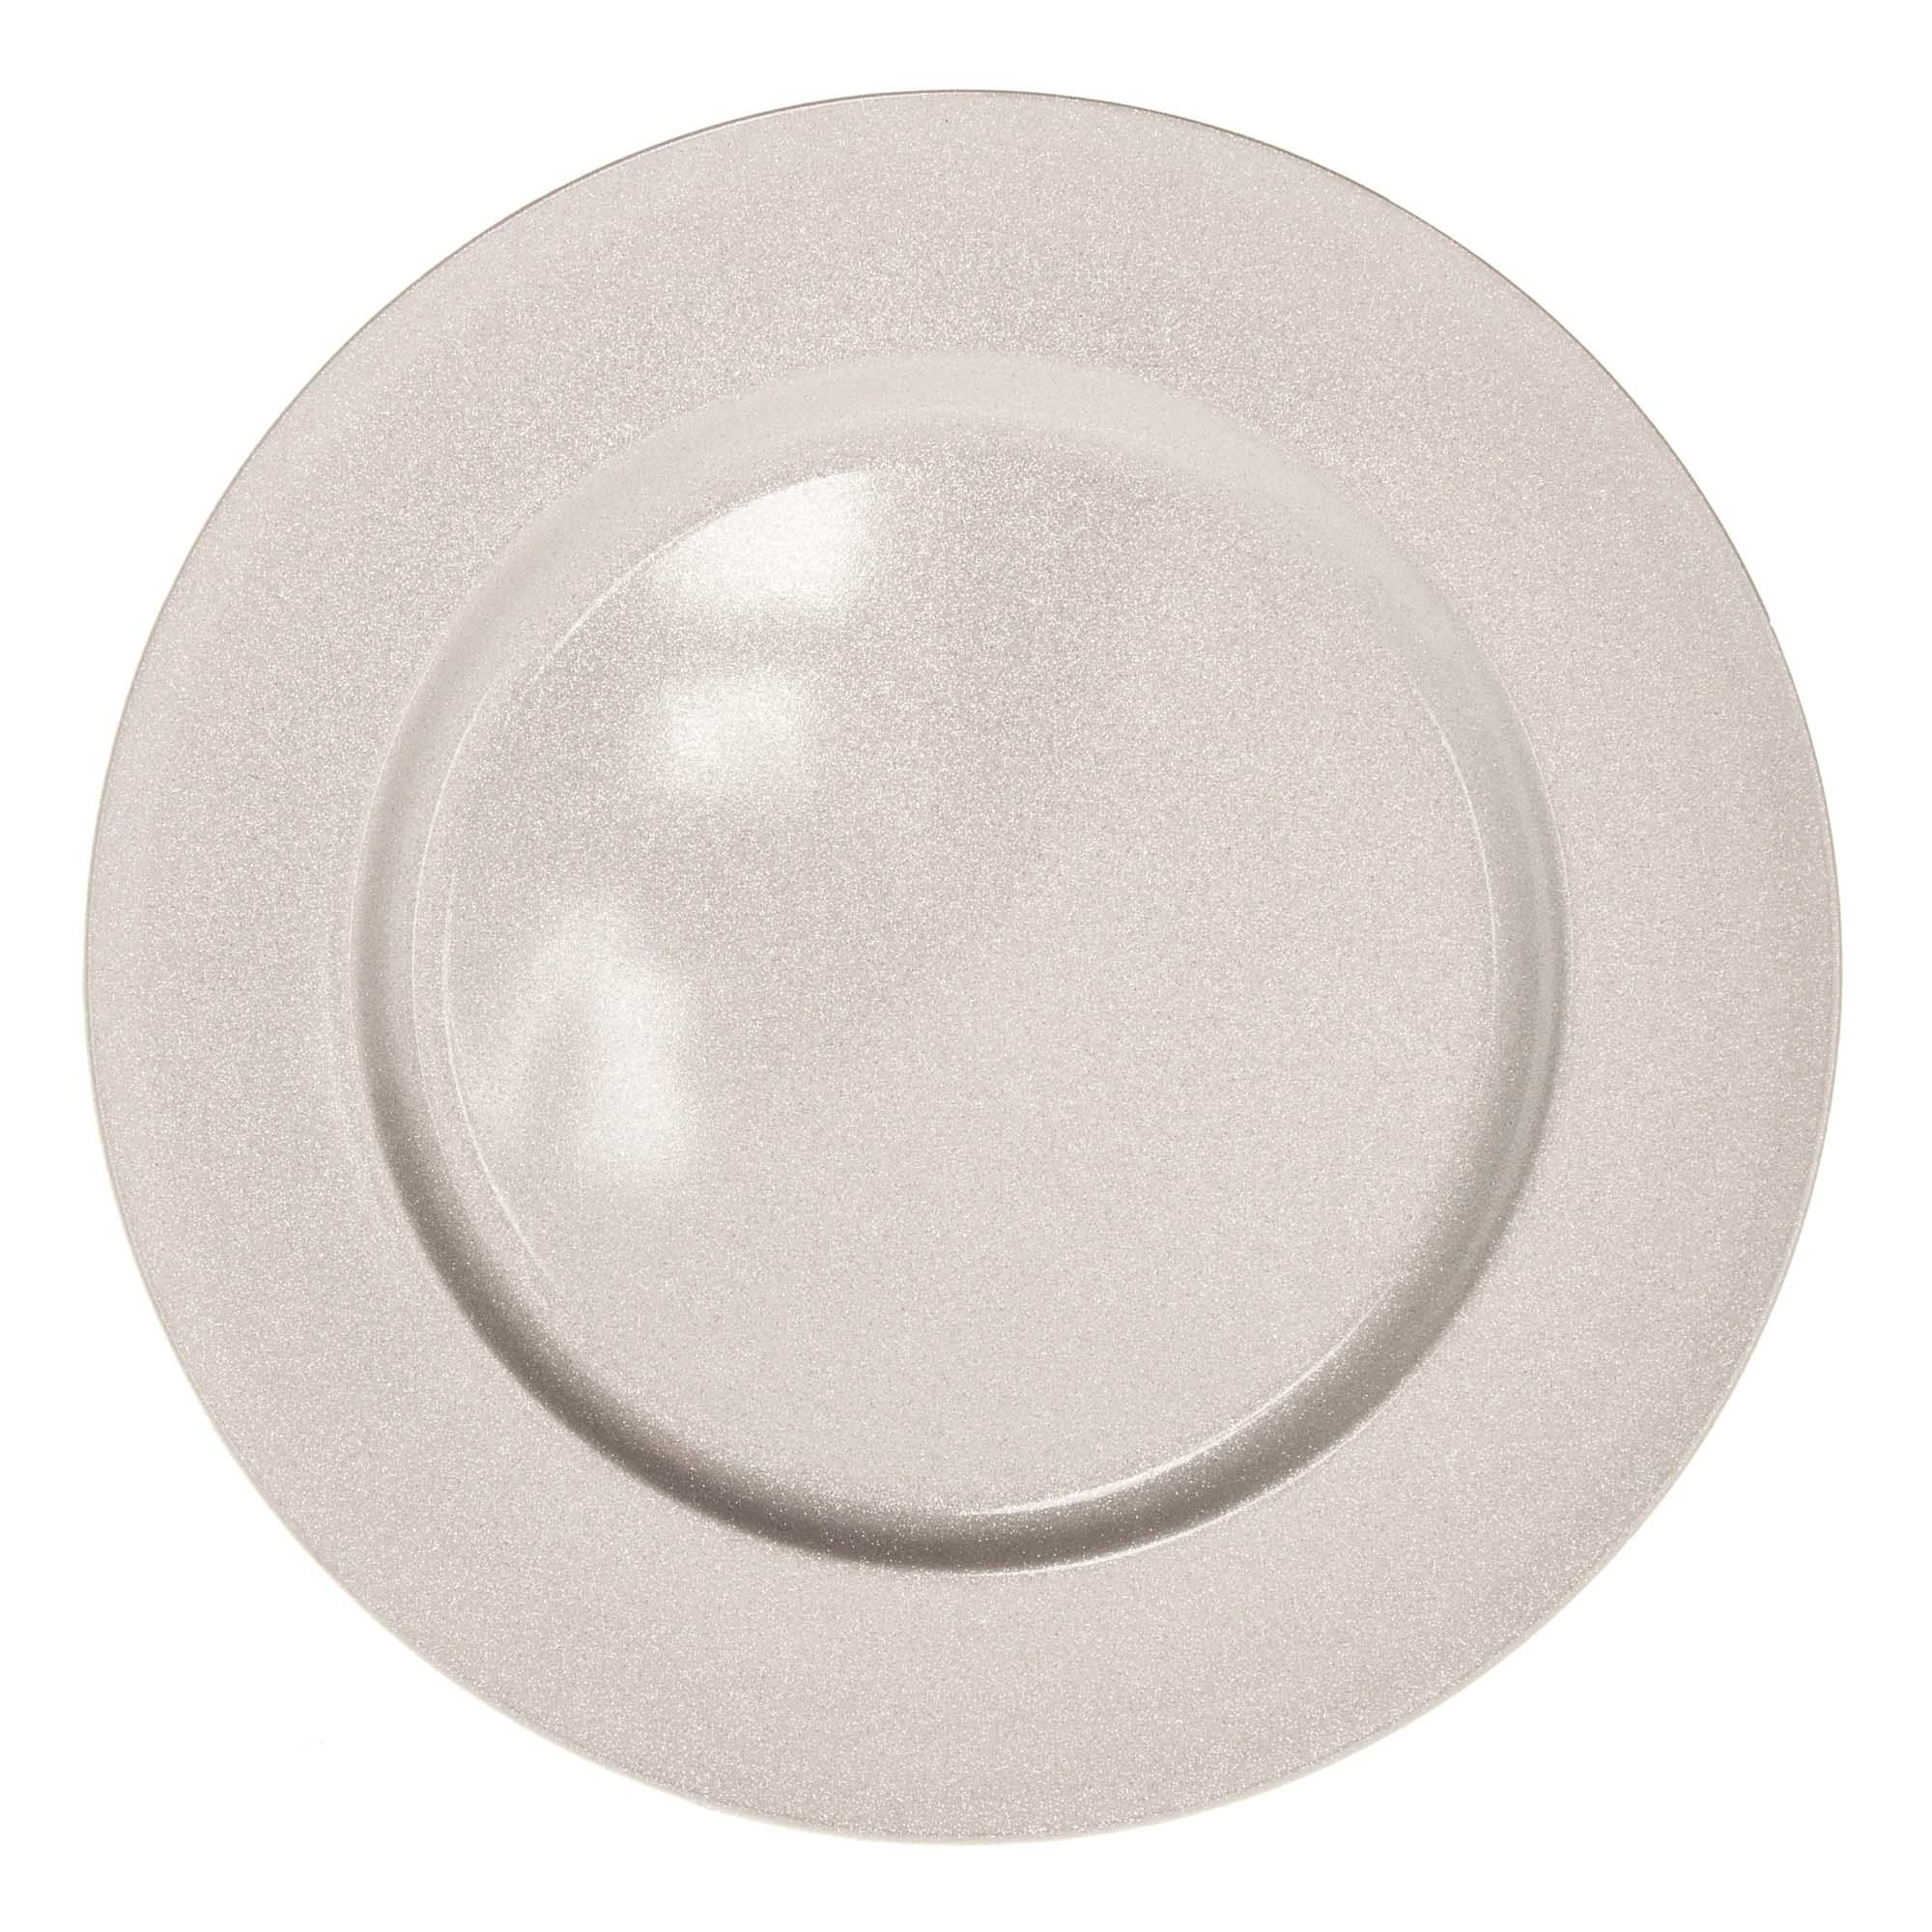 Glittered Round Charger Plate